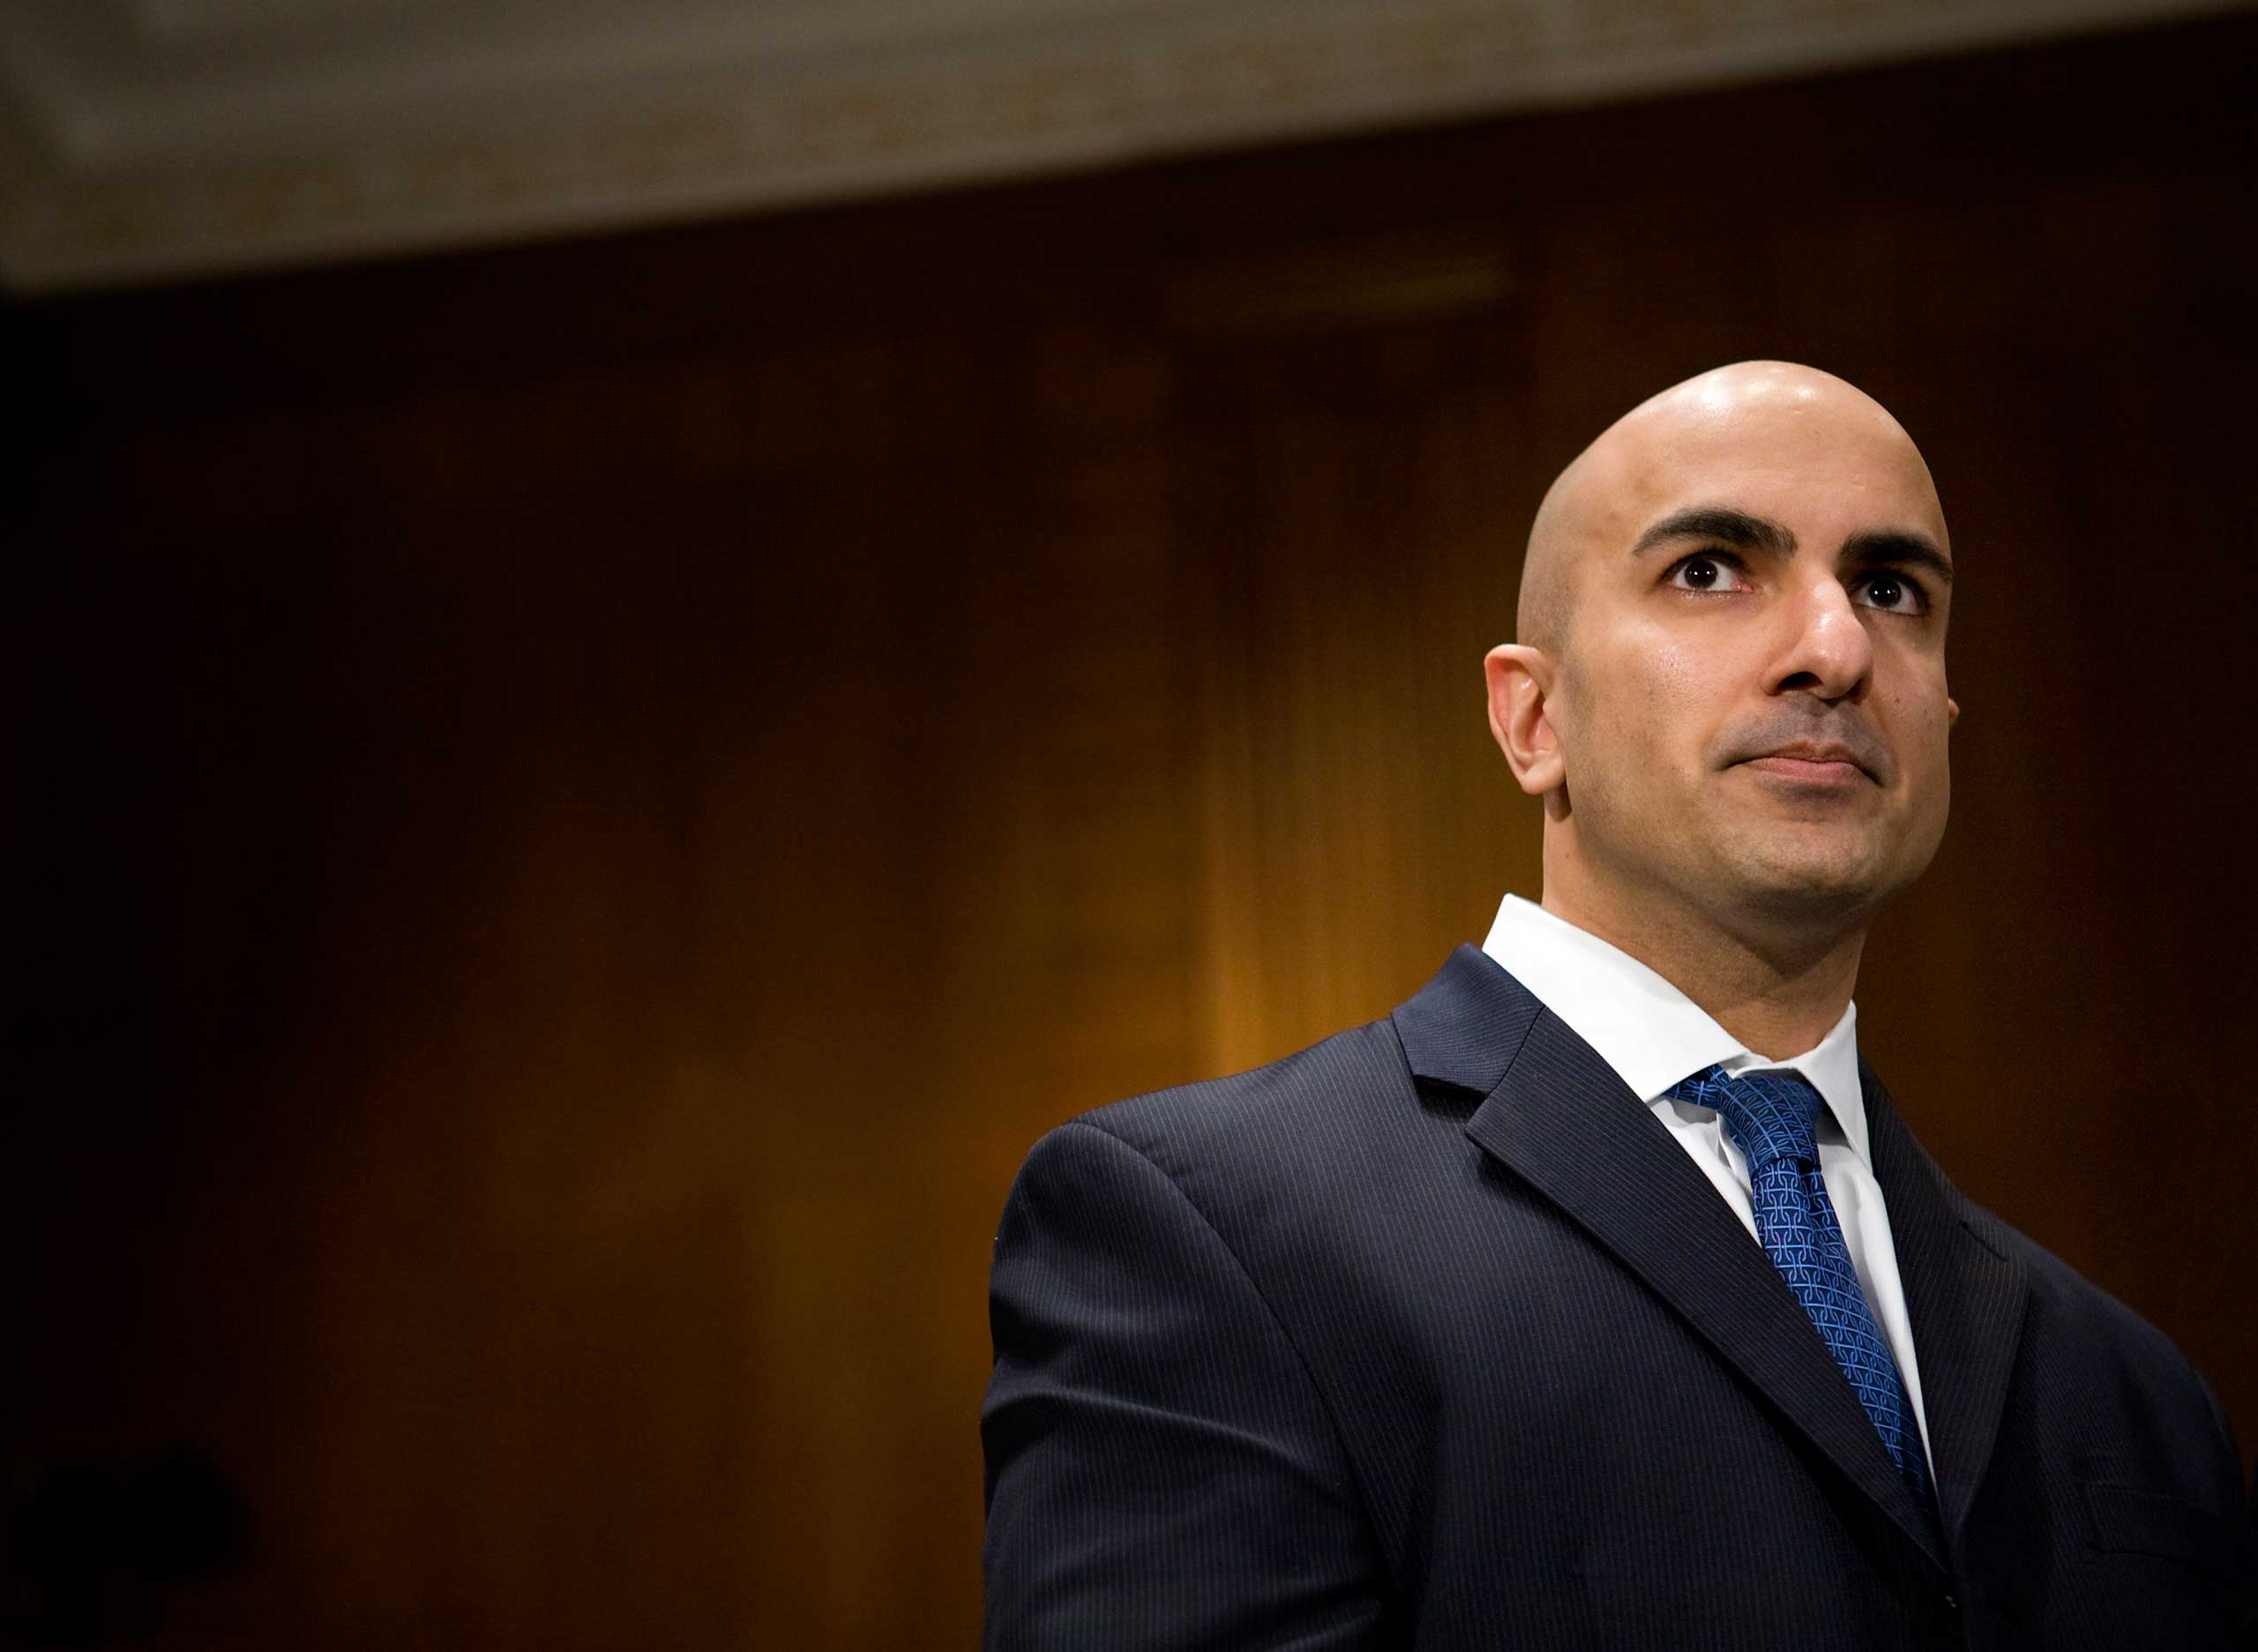 Neel Kashkari ran unsuccessfully as a Republican in the 2014 California gubernatorial election. As Assistant Secretary of the Treasury for Financial Stability from 2008 to 2009, he oversaw the country's response to the 2008 financial crisis.